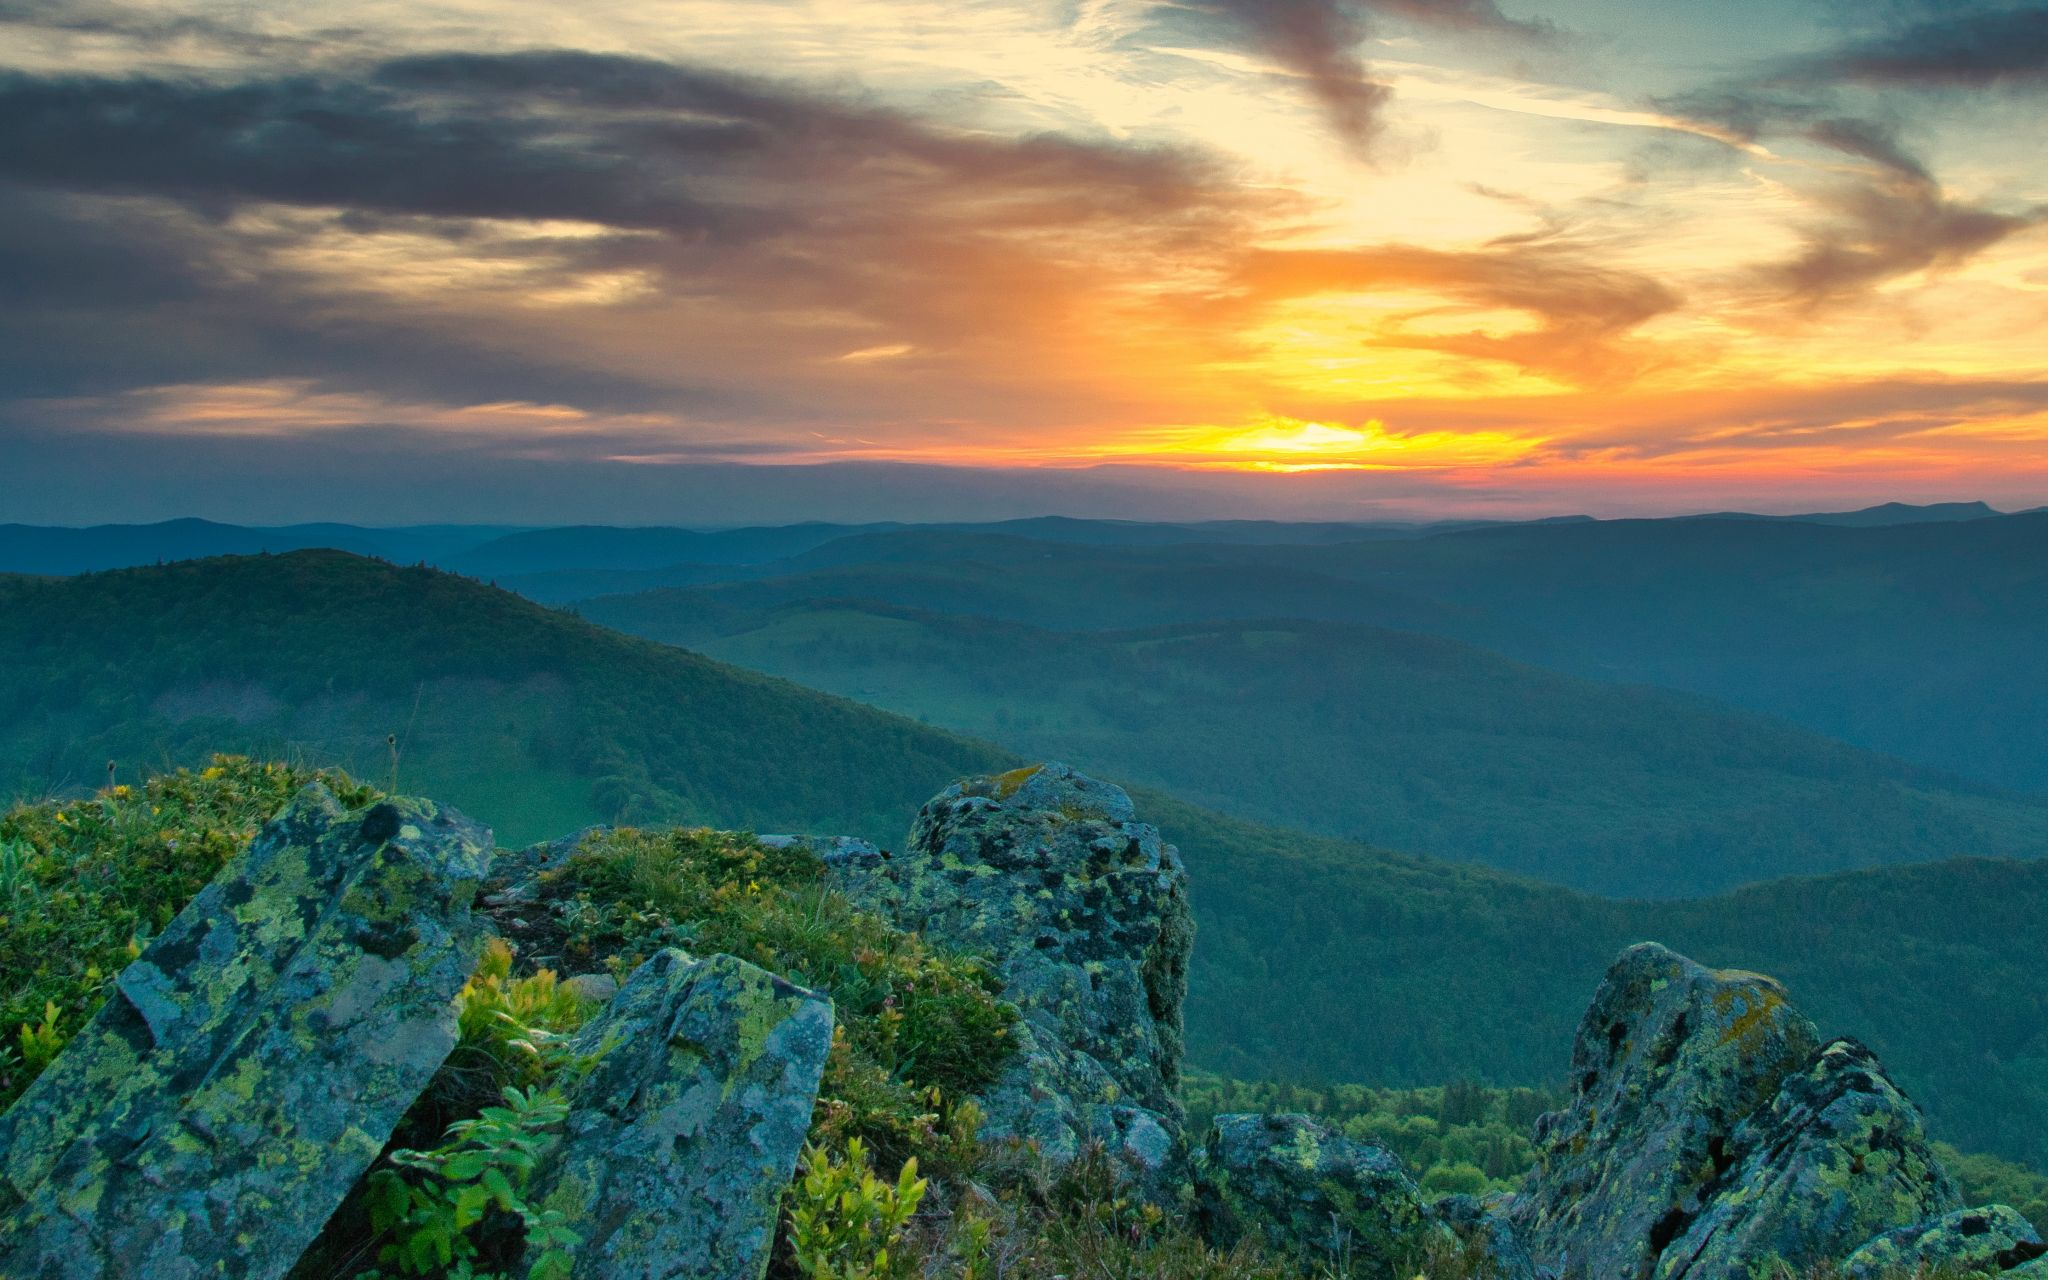 Sunset over French Vosges, France